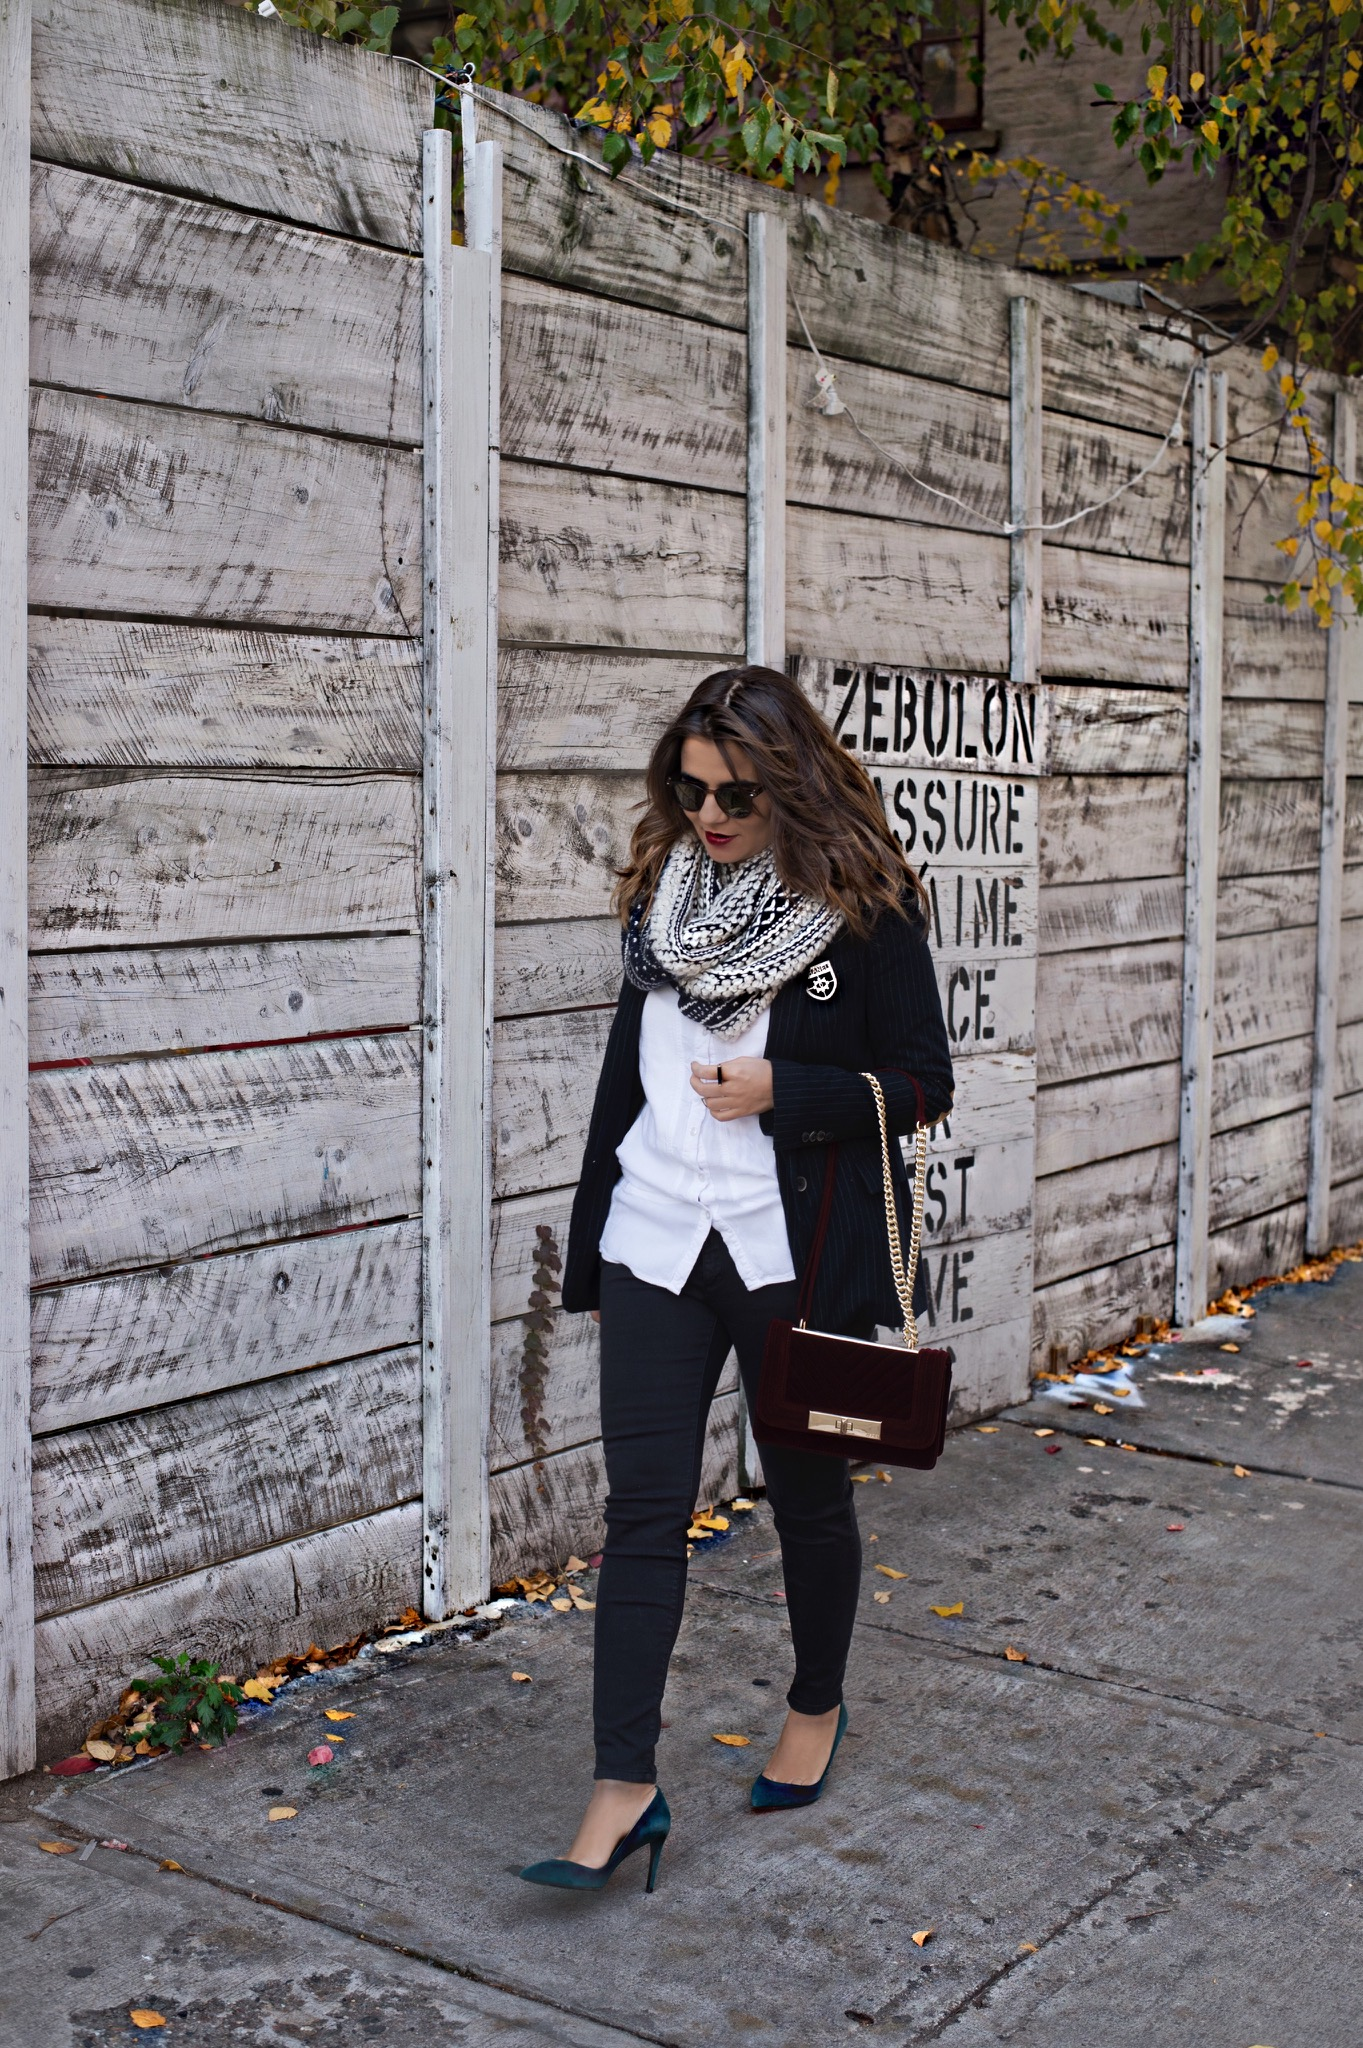 skinny-jeans-with-blazer-jacket-street-style-alley-girl-new-york-fashion-blogger-3